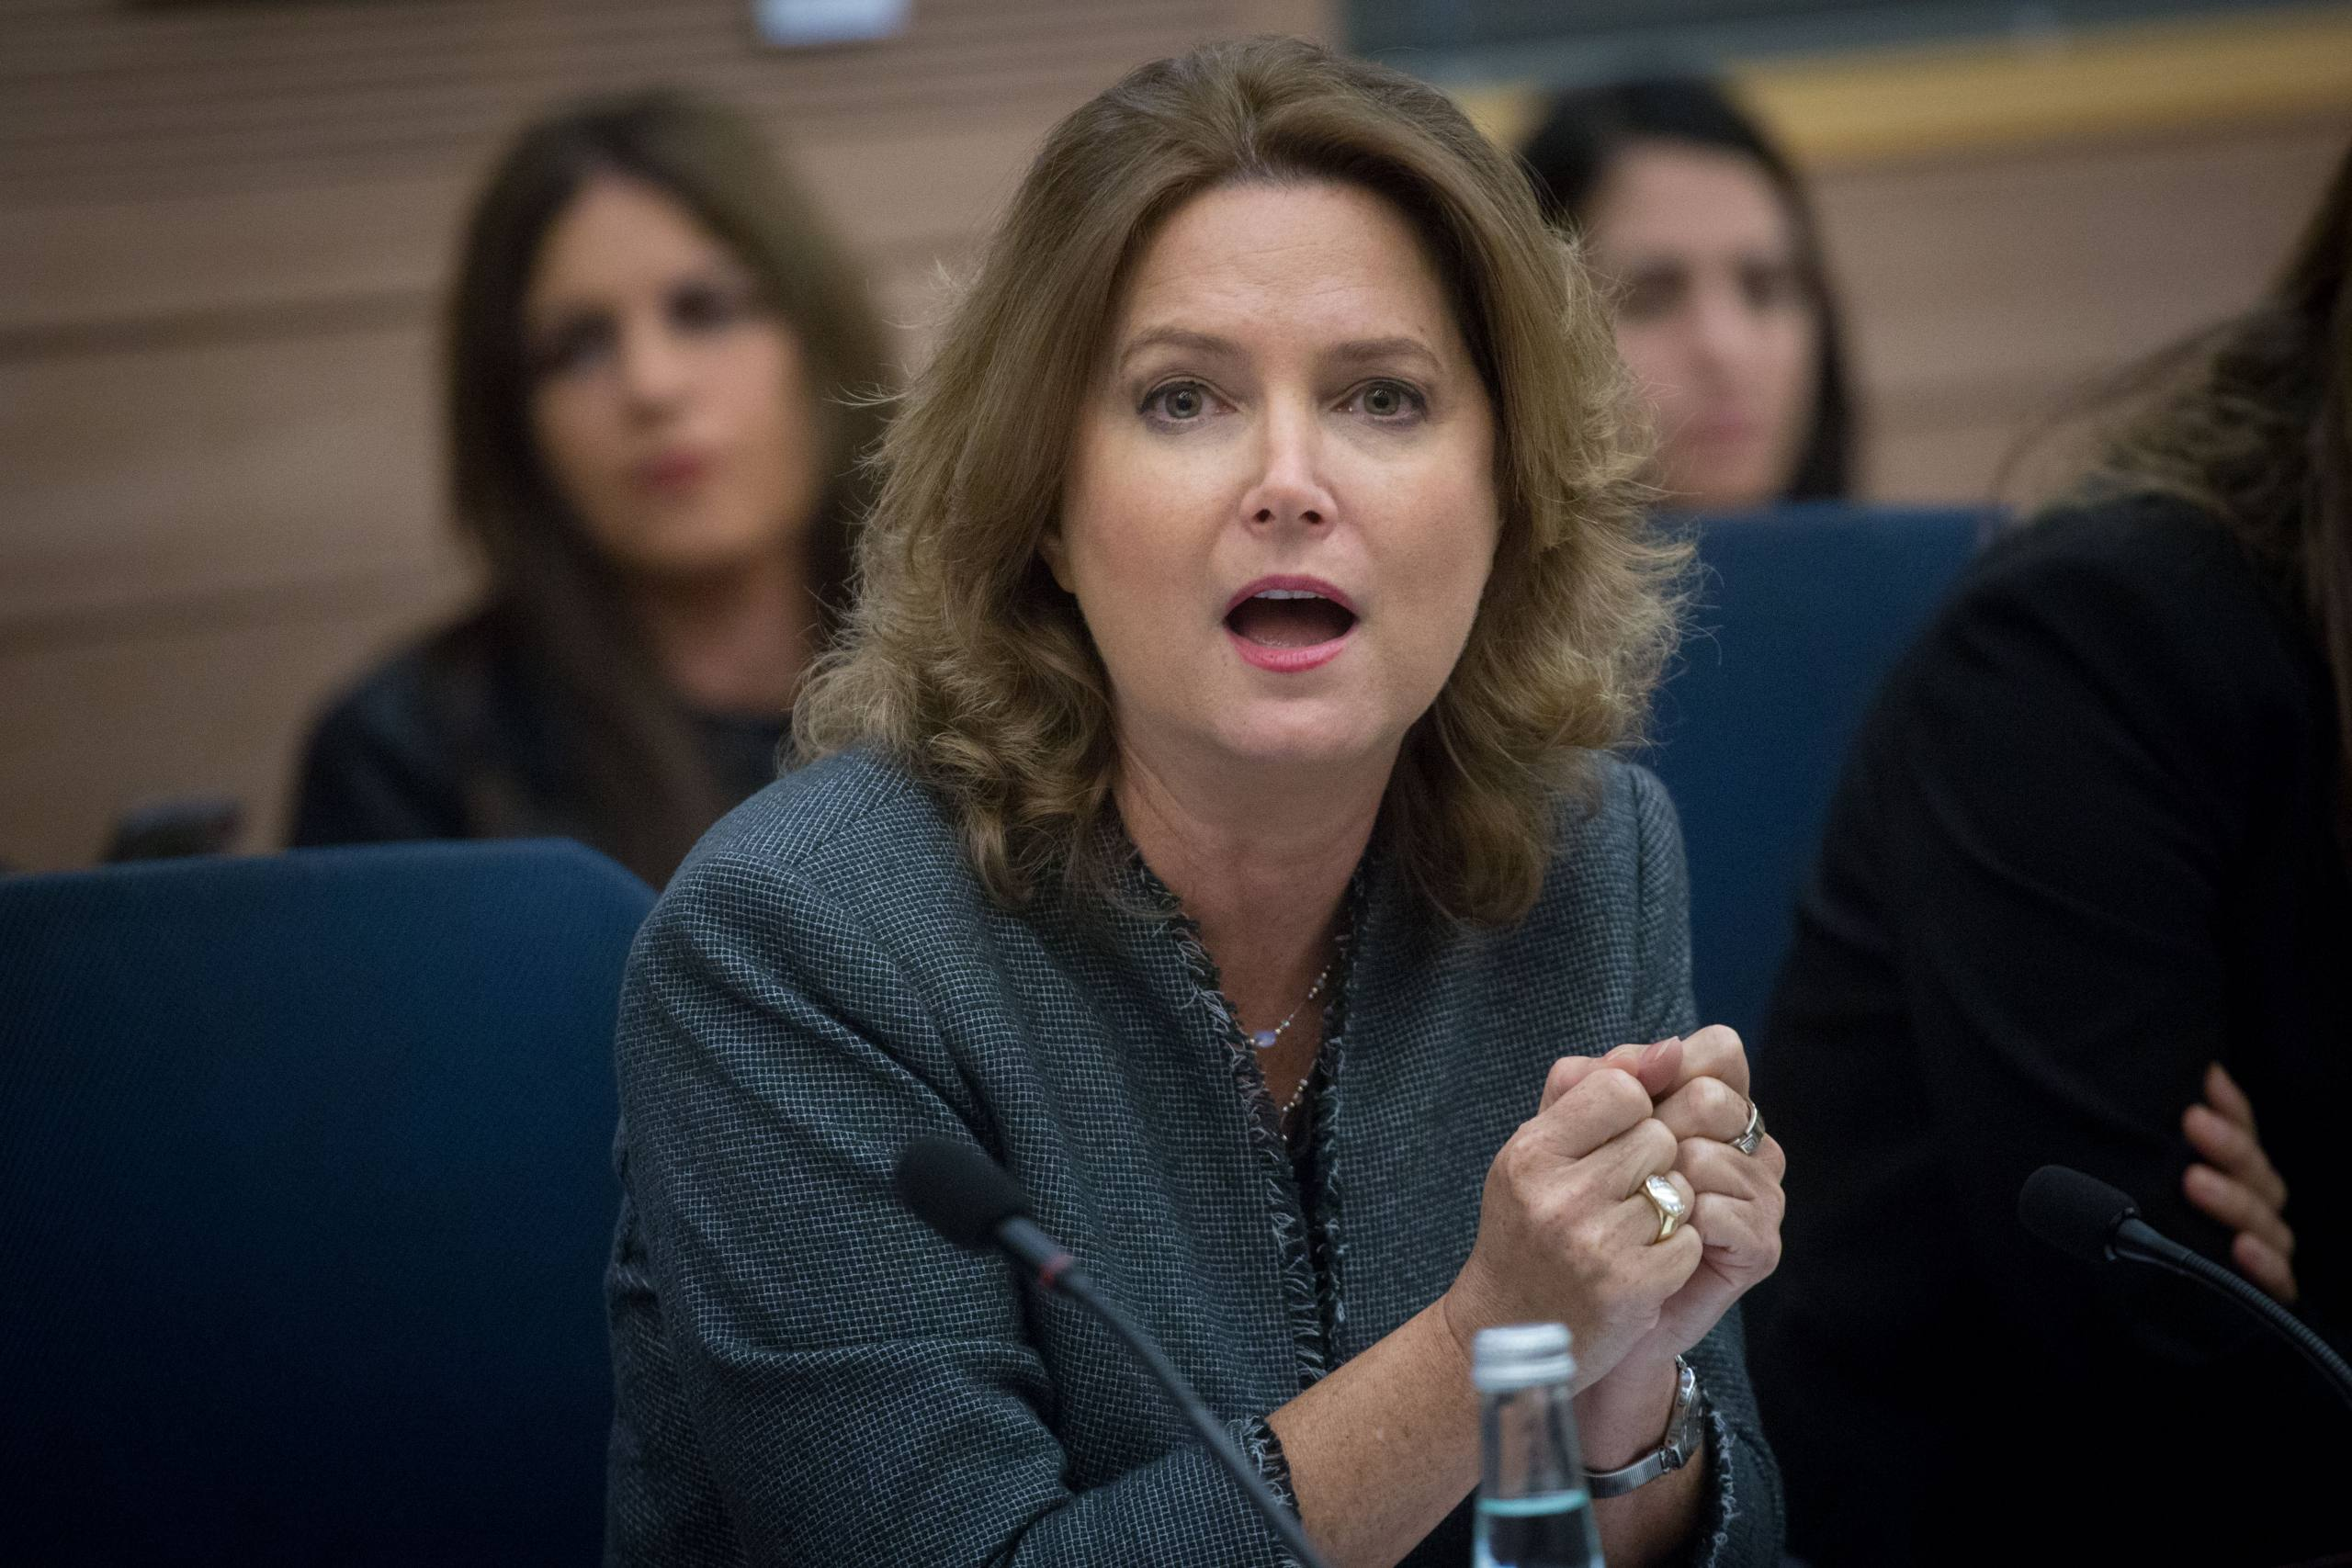 MK Michal Rozin seen during a meeting of the Education, Culture, and Sports Committee in the Israeli parliament on November 6, 2017. Photo by Miriam Alster/Flash90 *** Local Caption *** מיכל רוזין